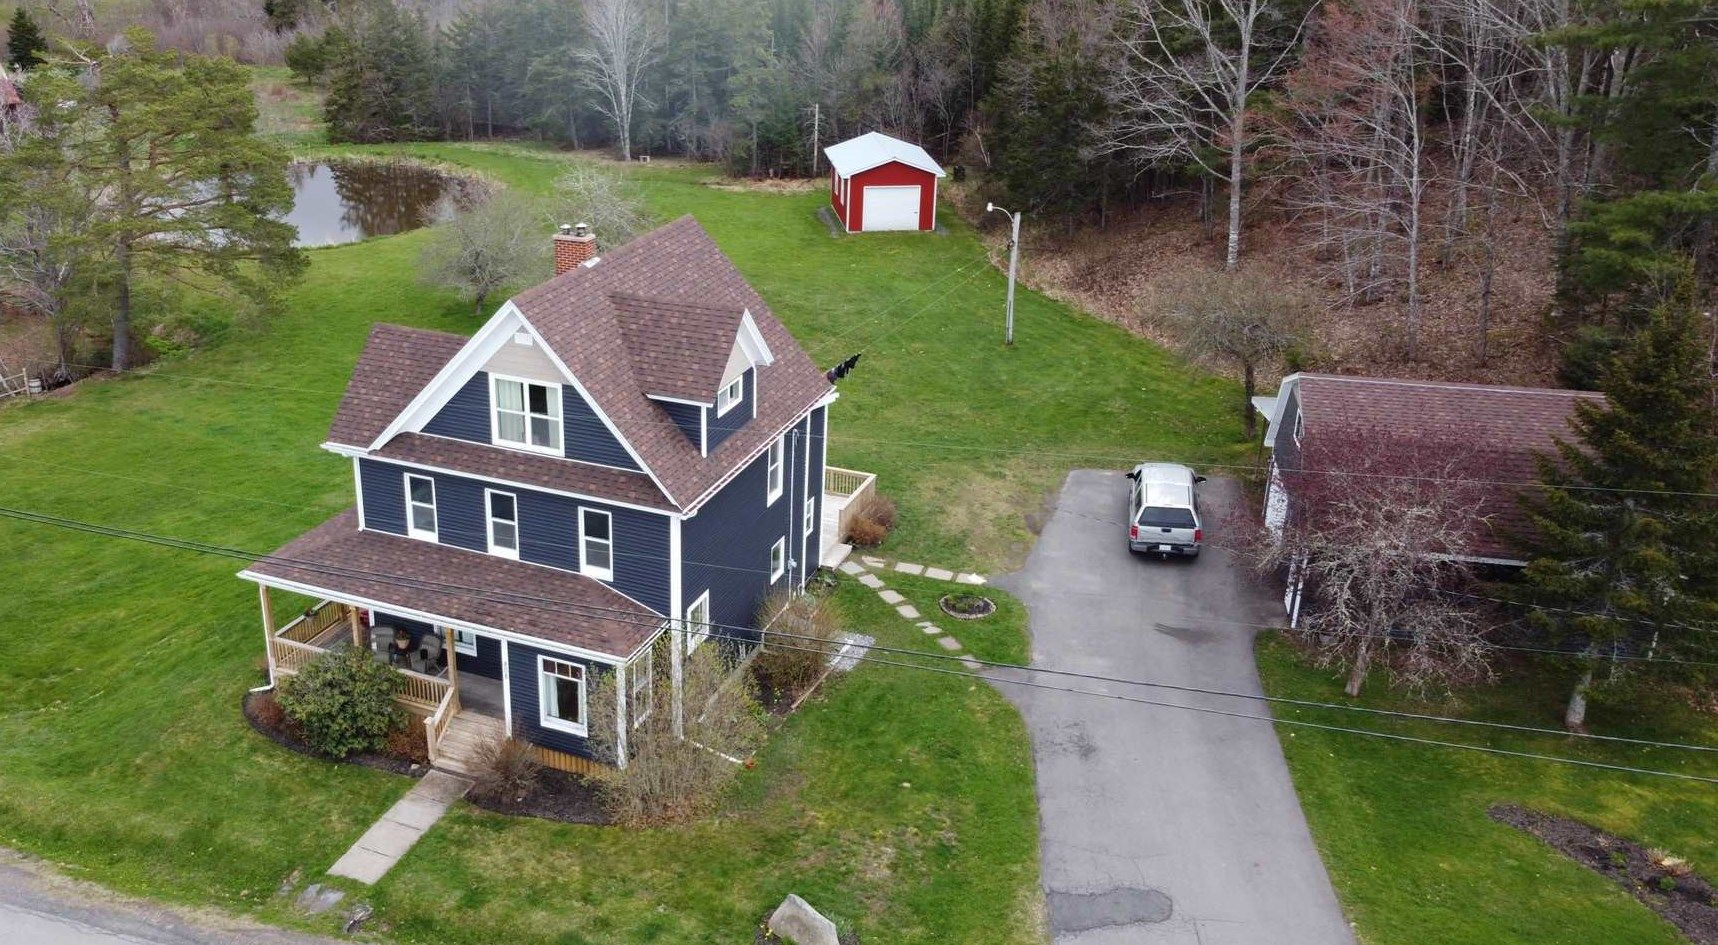 Main Photo: 808 Marshdale Road in Hopewell: 108-Rural Pictou County Residential for sale (Northern Region)  : MLS®# 202111807